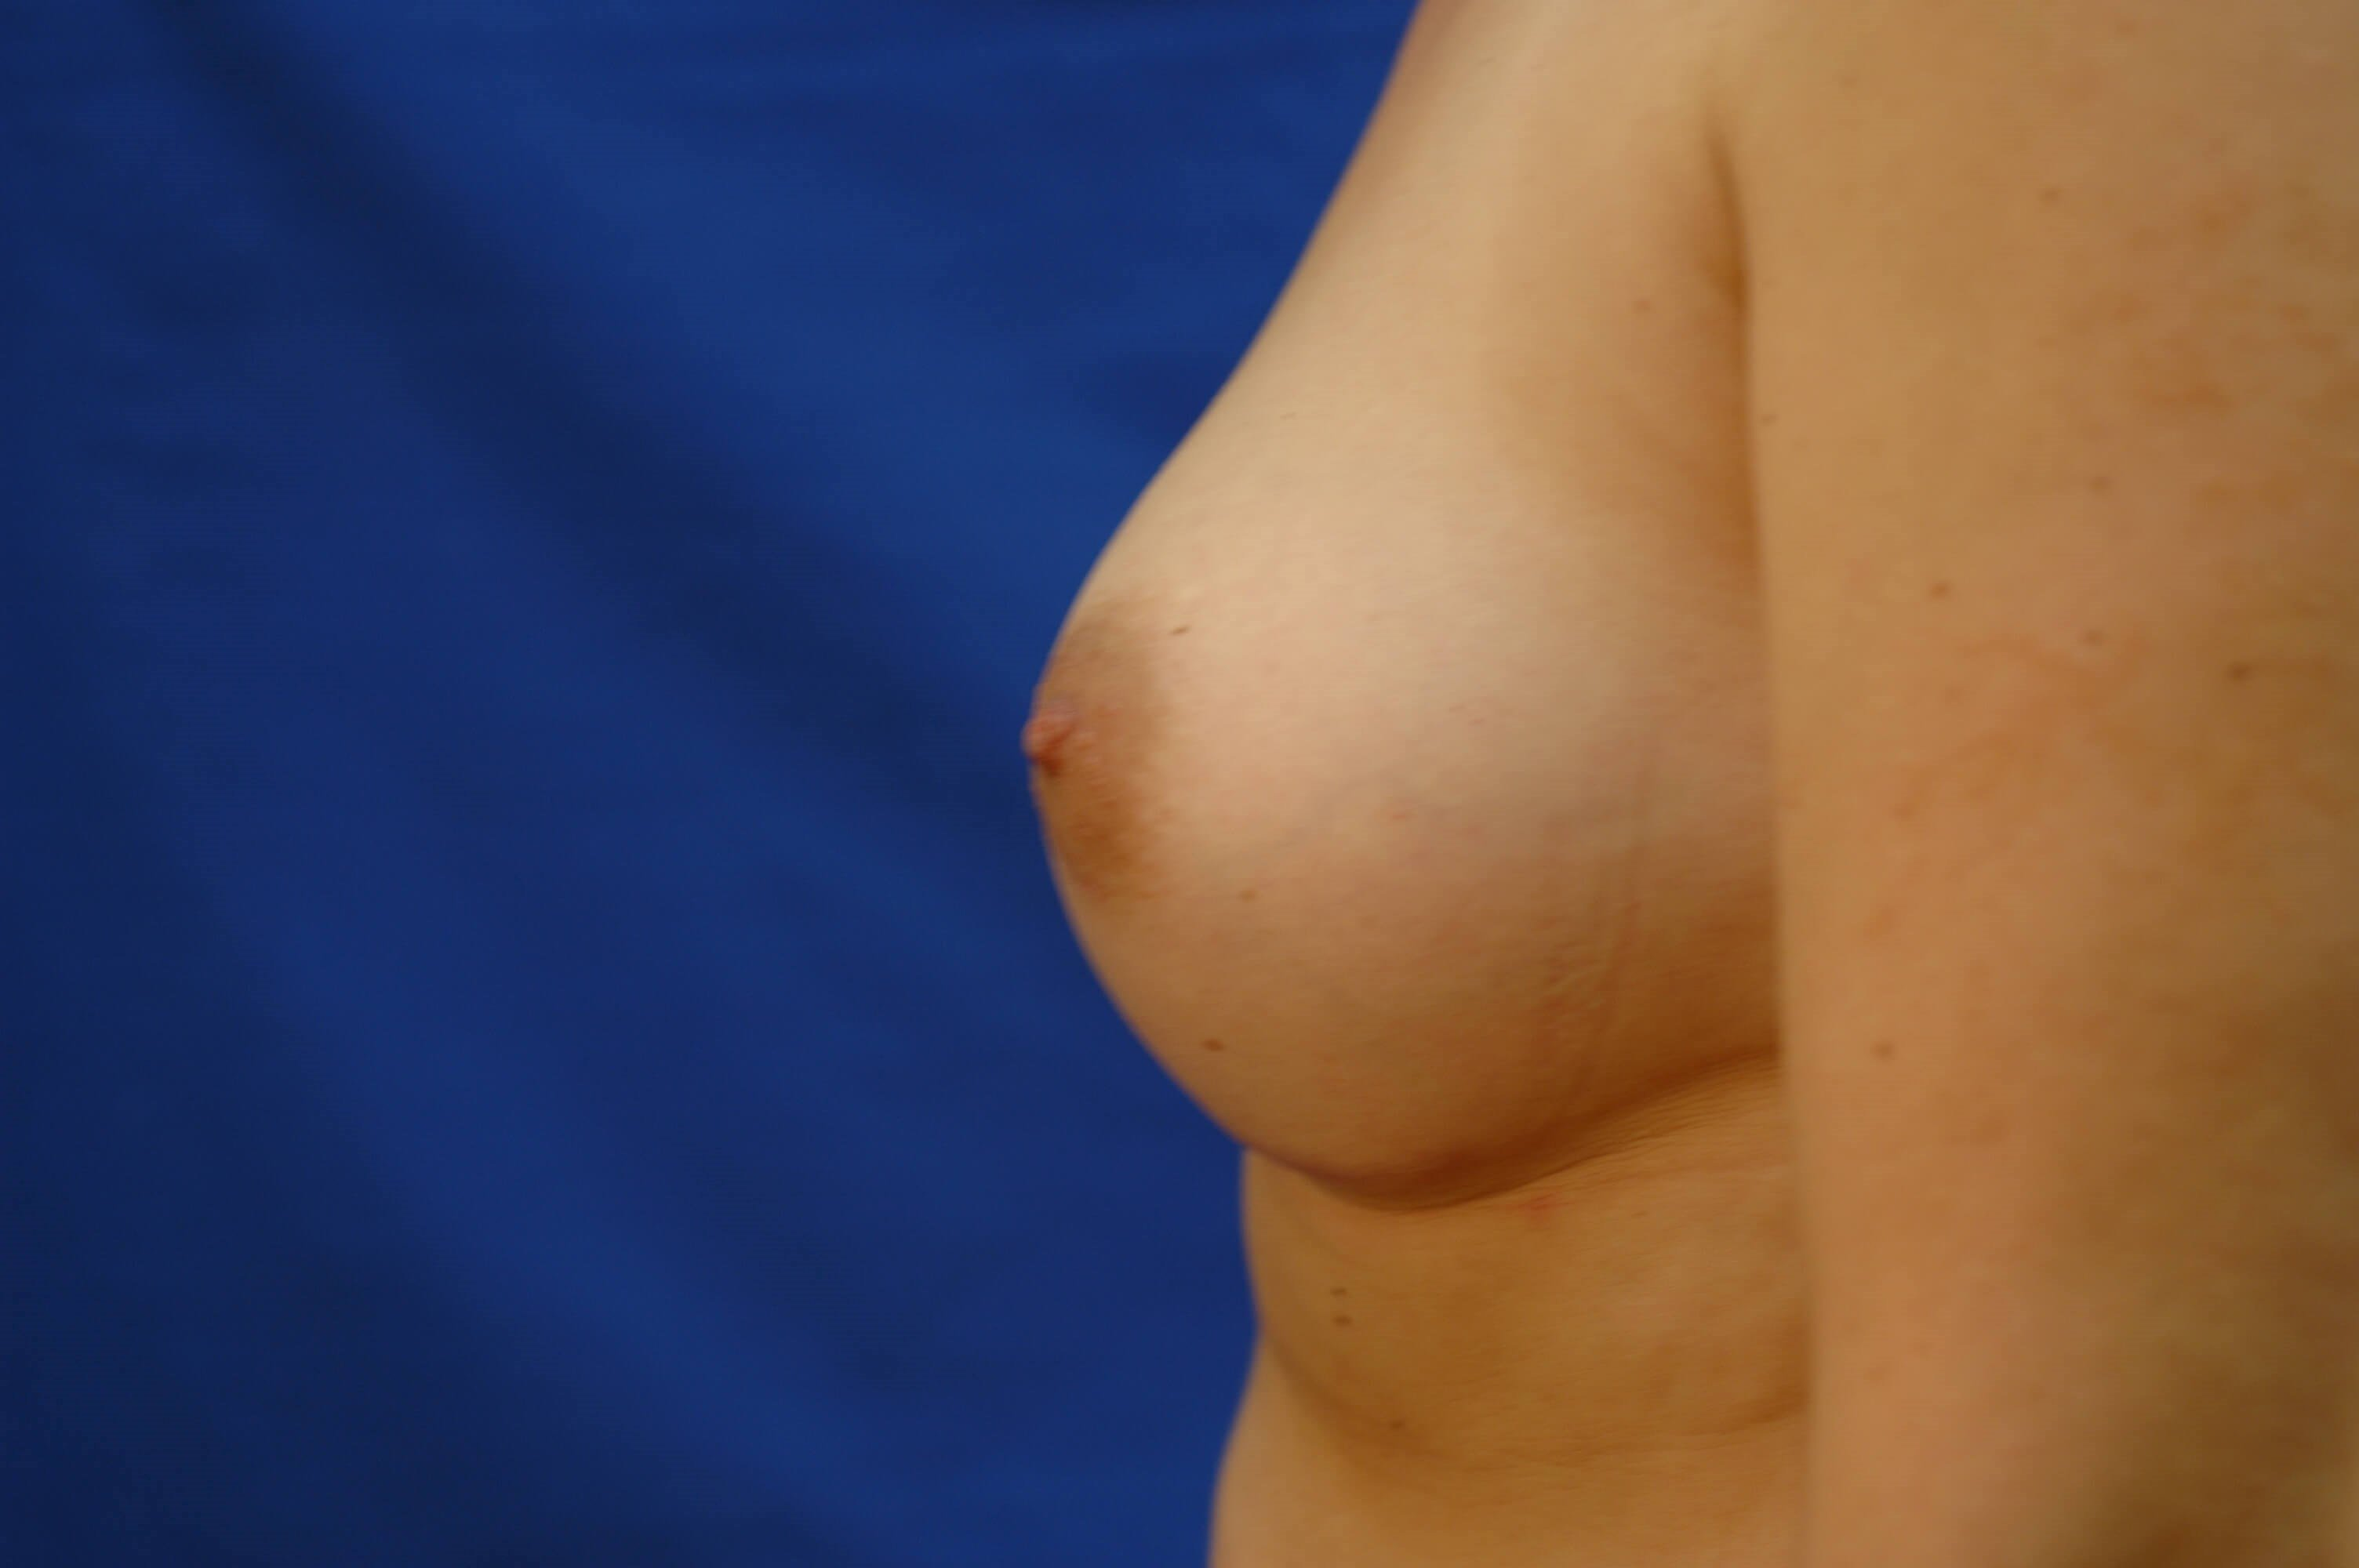 SanClemente BreastAugmentation After Side View